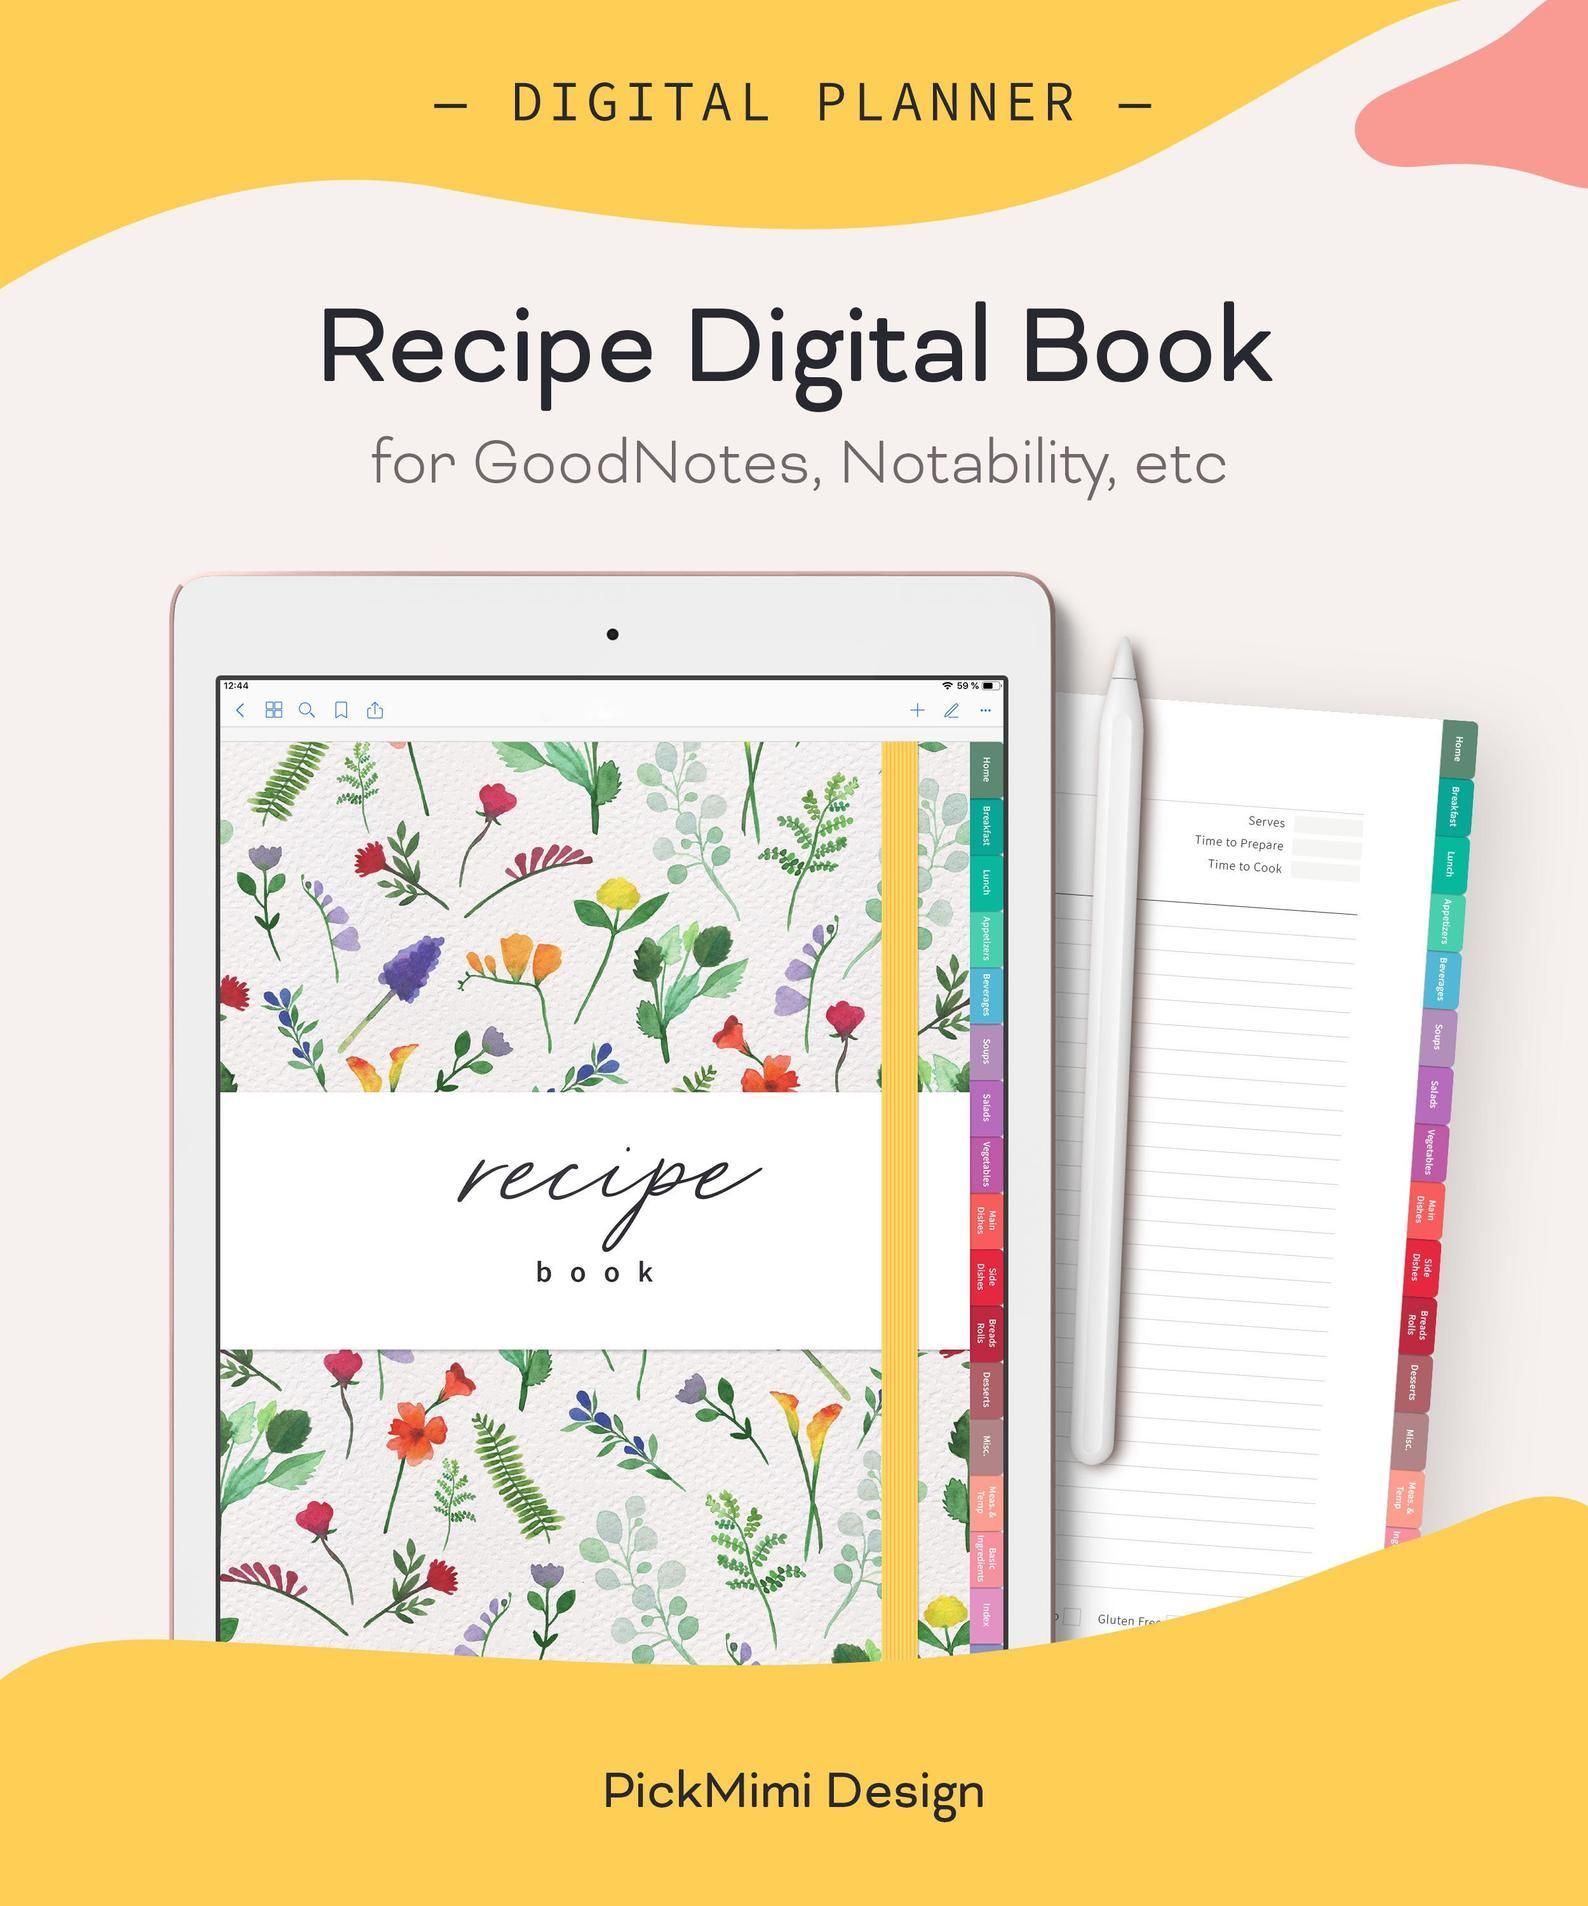 Digital Recipe Book For Goodnotes Notability Hyperlinked Recipe Pages Digital Recipe Cards Template Recipe Page Template In 2021 Digital Recipe Book Recipe Cards Template Recipe Book Templates